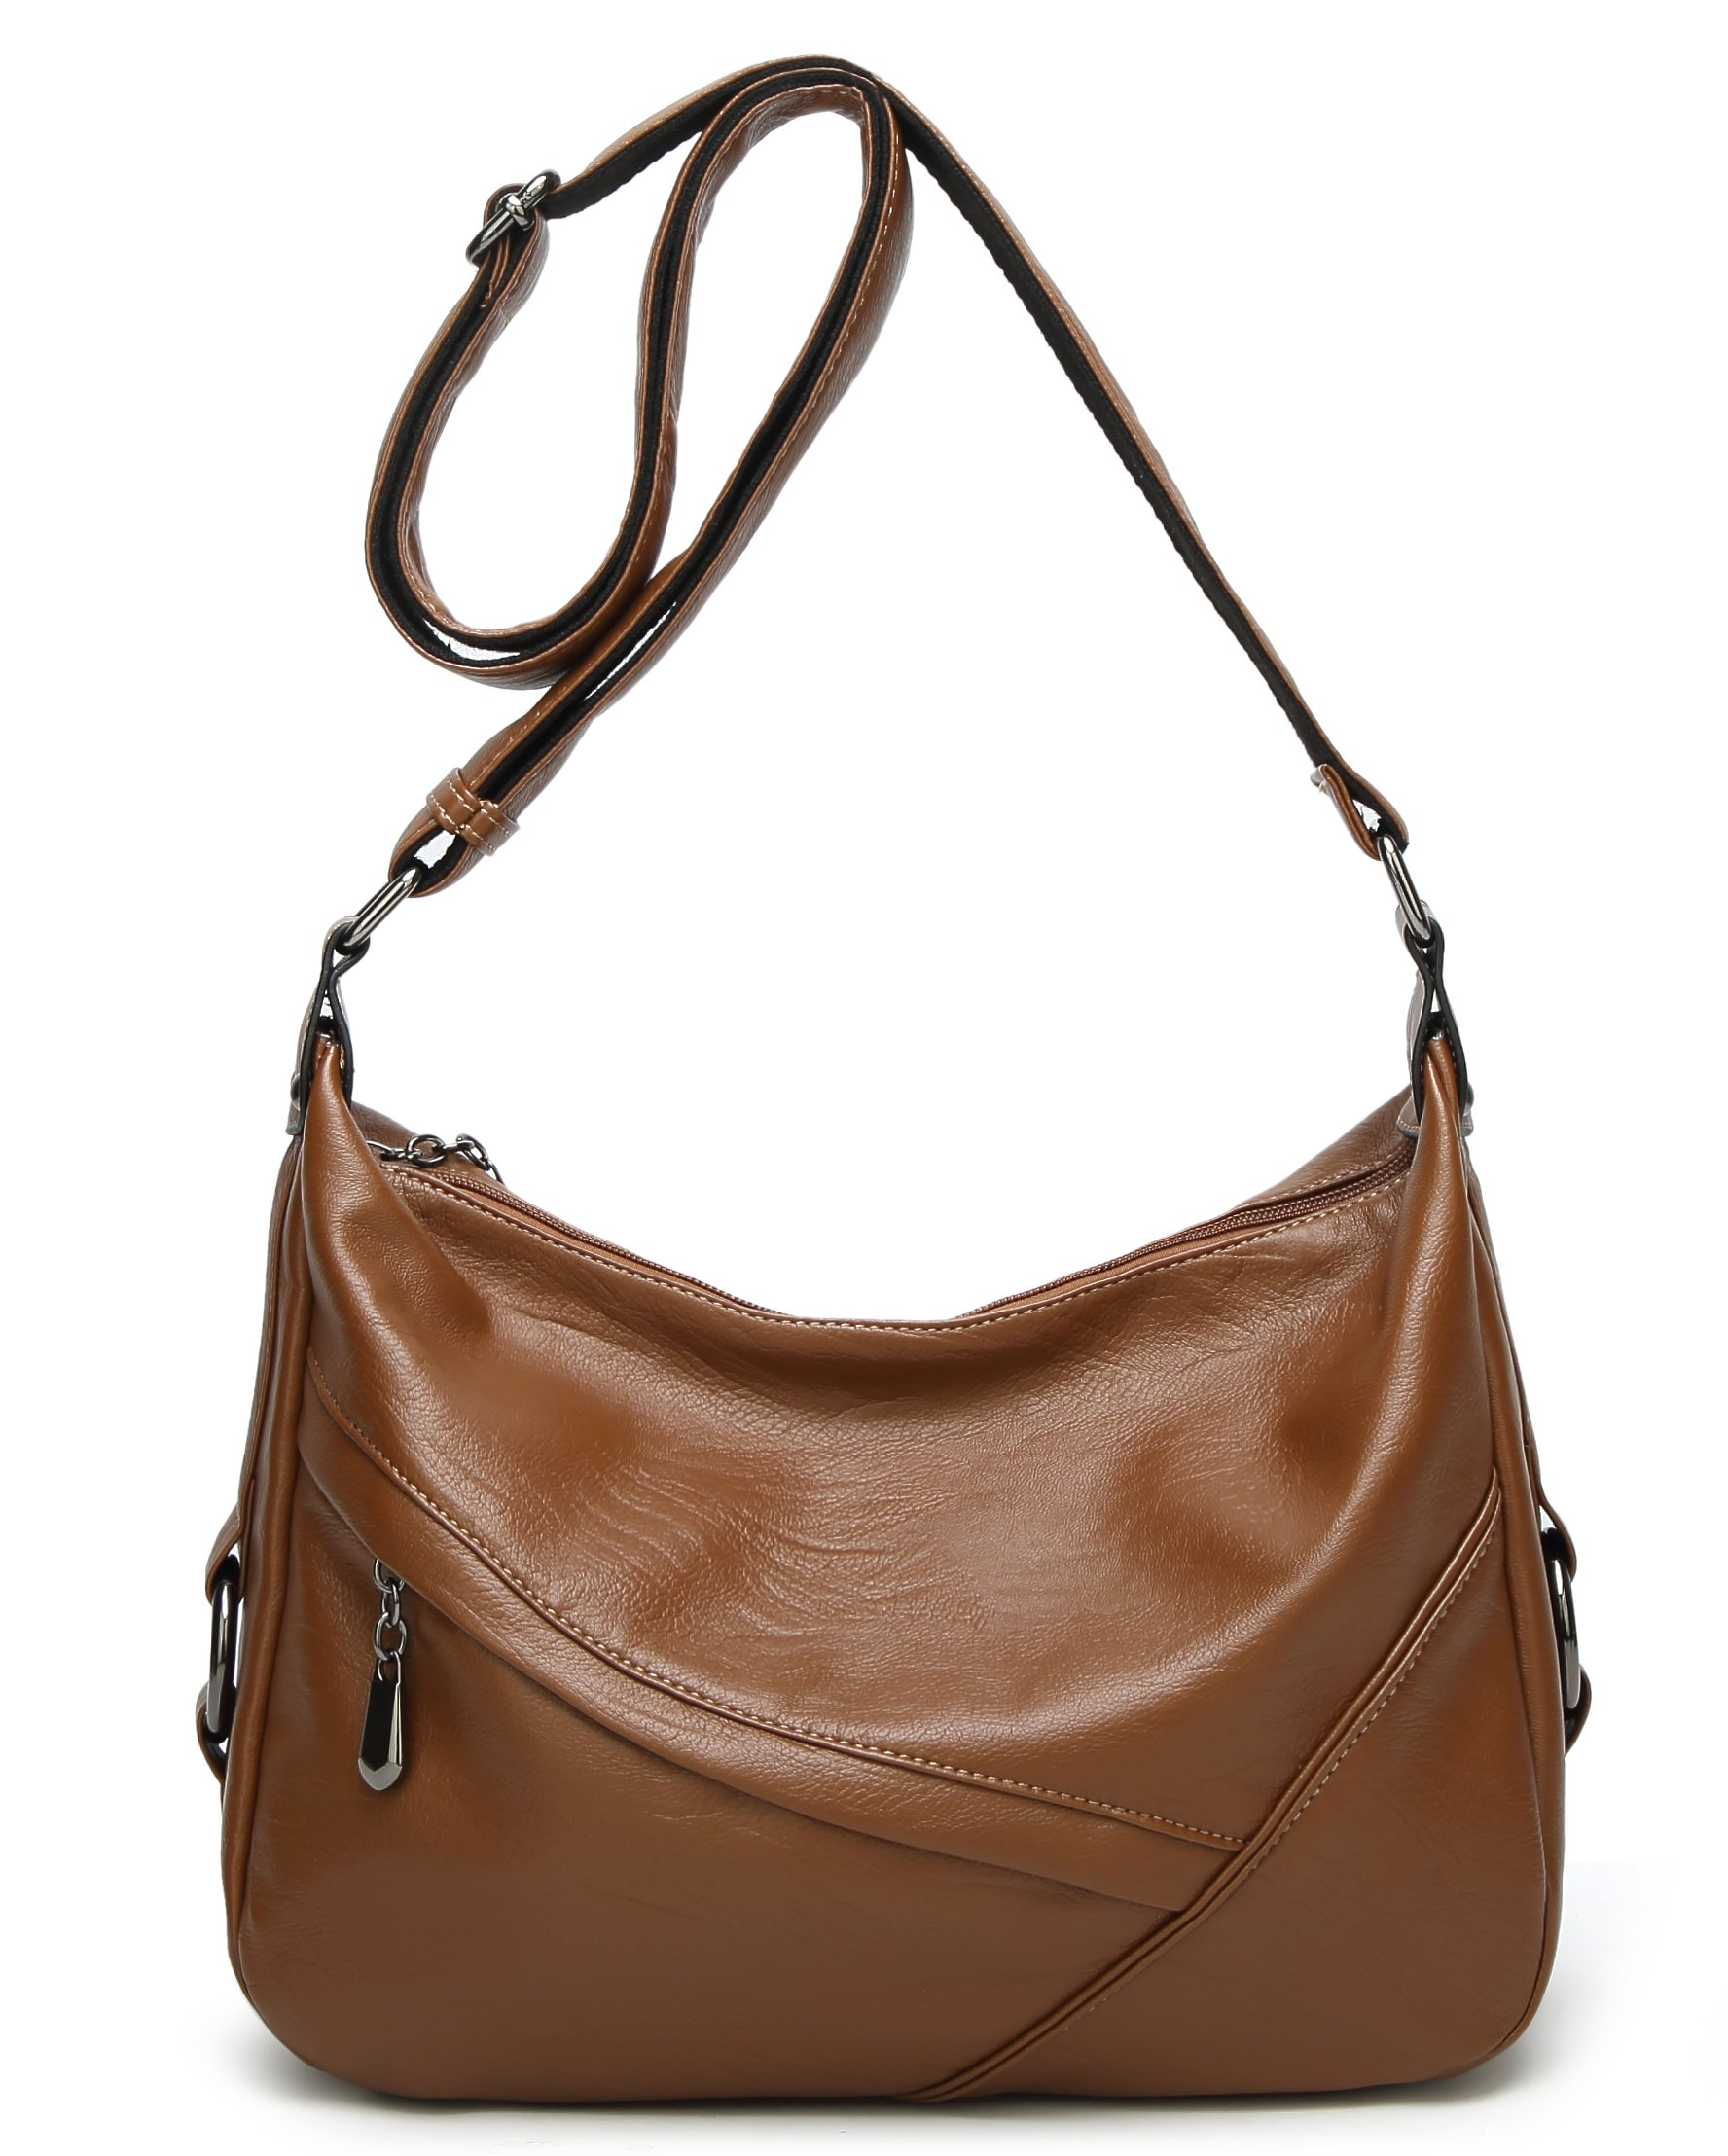 Molodo Women PU Leather Big Shoulder Bag Purse Handbag Tote Bags (Brown)